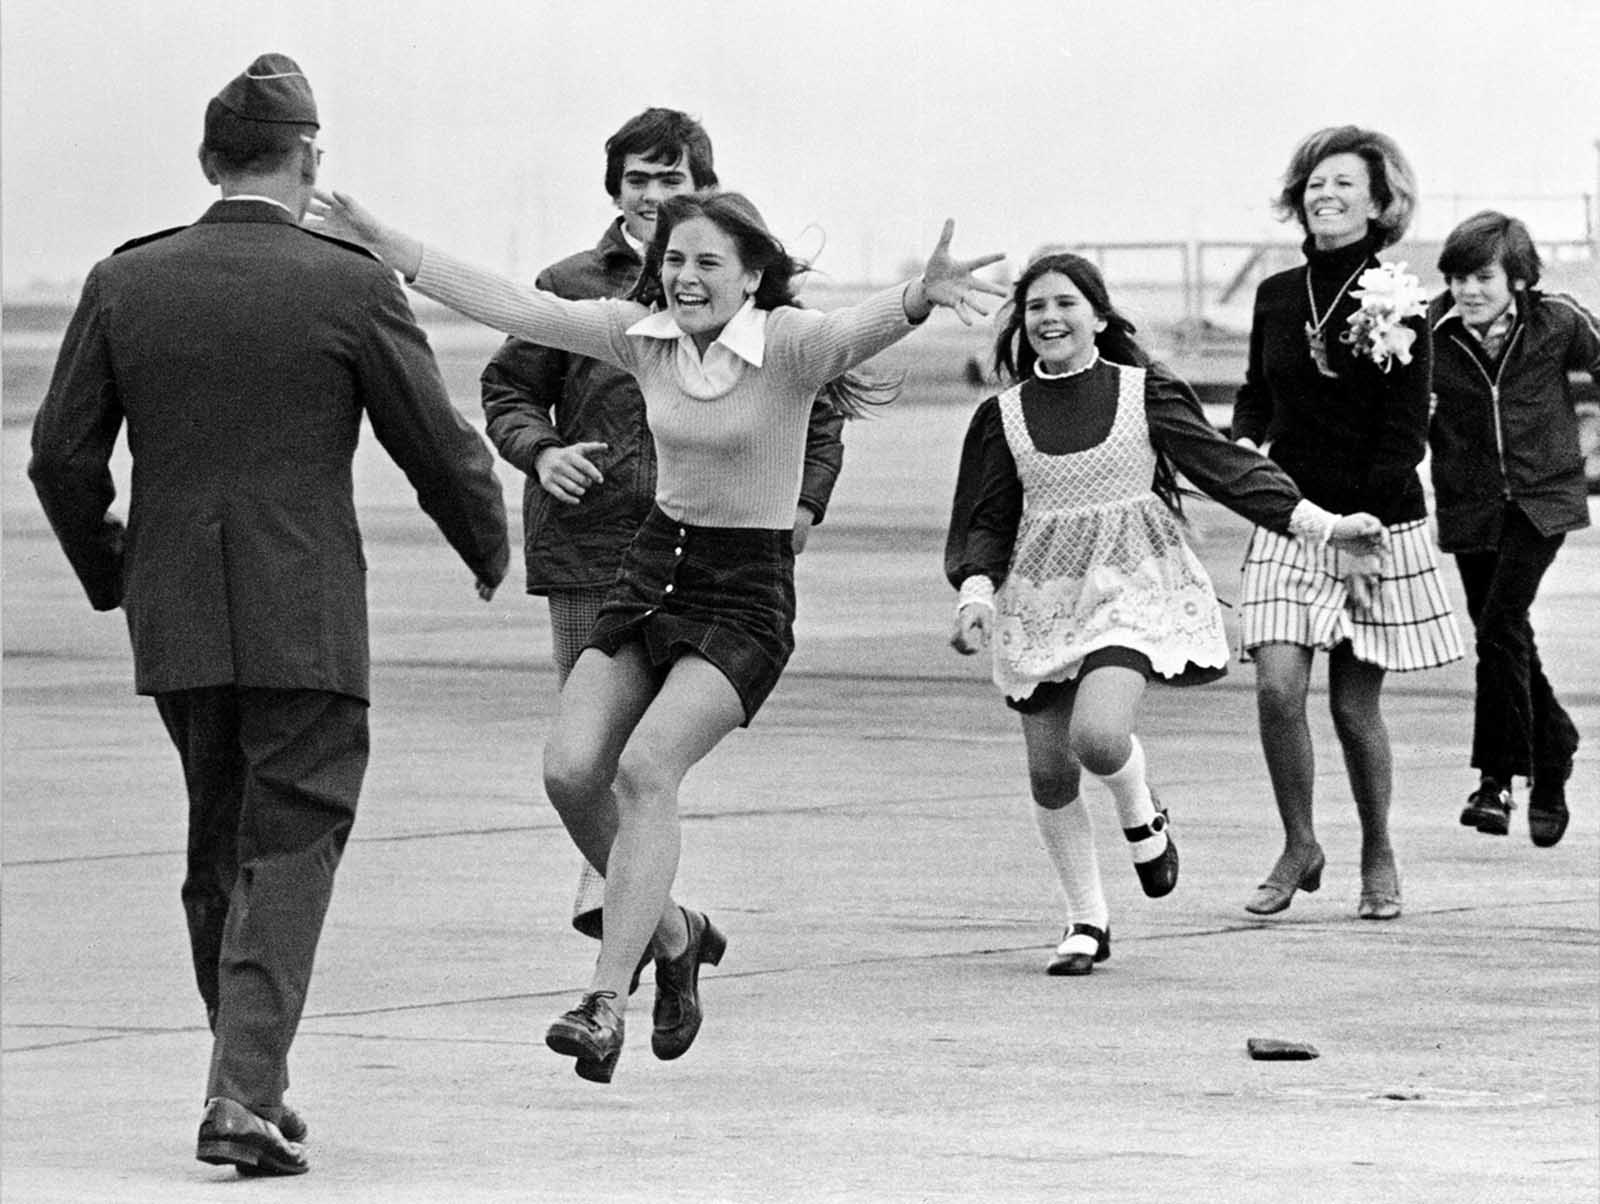 The released prisoner of war Lieutenant Colonel Robert L. Stirm is greeted by his family at Travis Air Force Base in Fairfield, California, as he returns home from the Vietnam War, March 17, 1973. In the lead is Stirm's daughter Lori, 15; followed by son Robert, 14; daughter Cynthia, 11; wife Loretta and son Roger, 12. This famous photo, also called